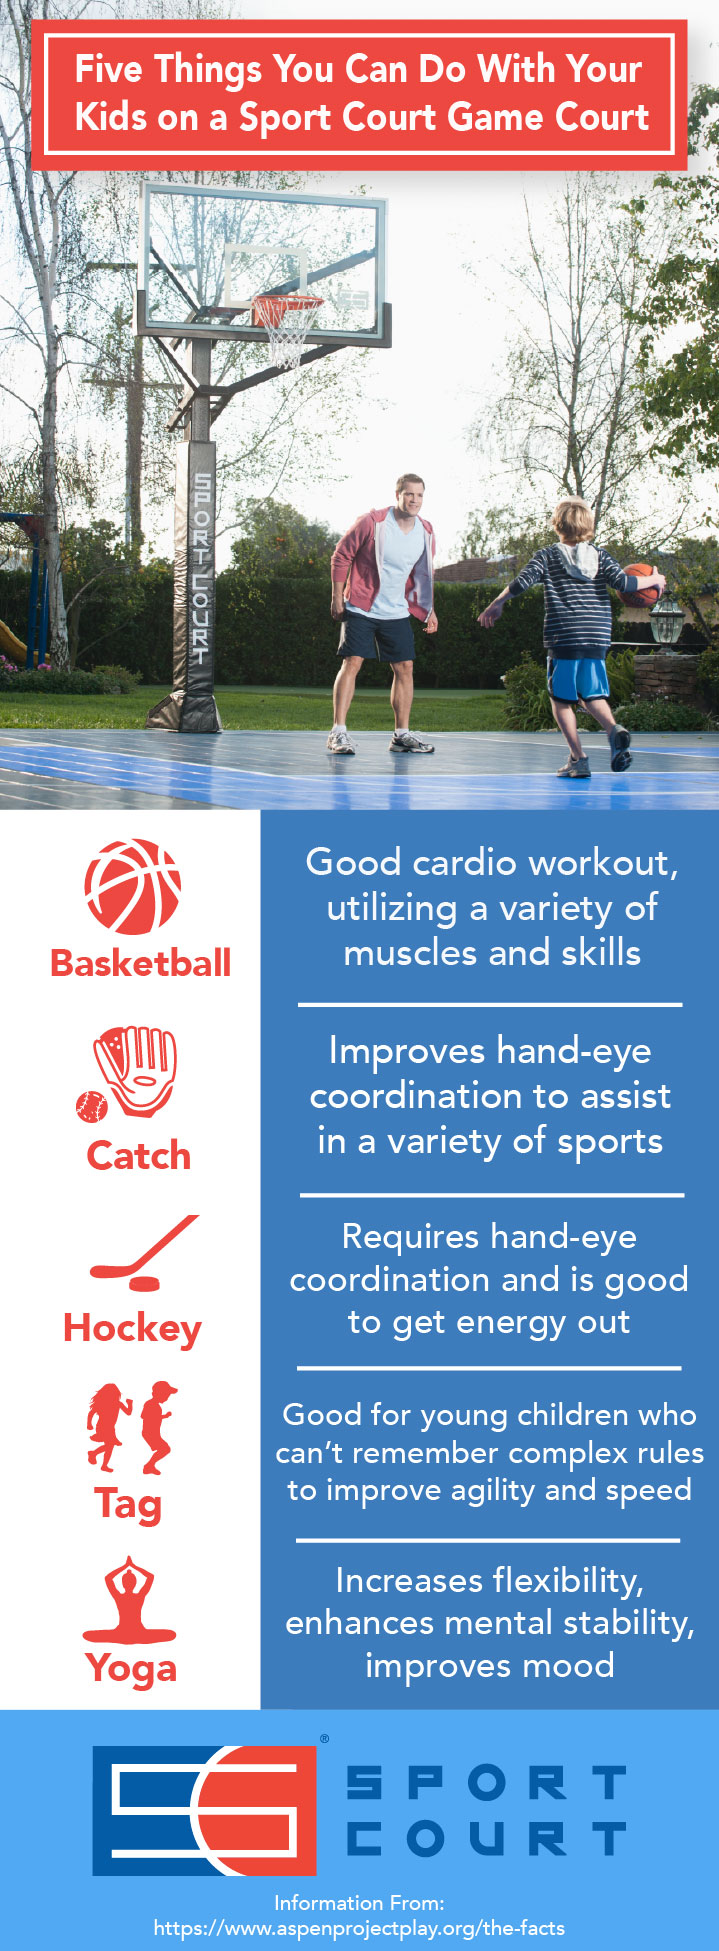 Five Things You Can Do With Your Kids on a Sport Court Game Court